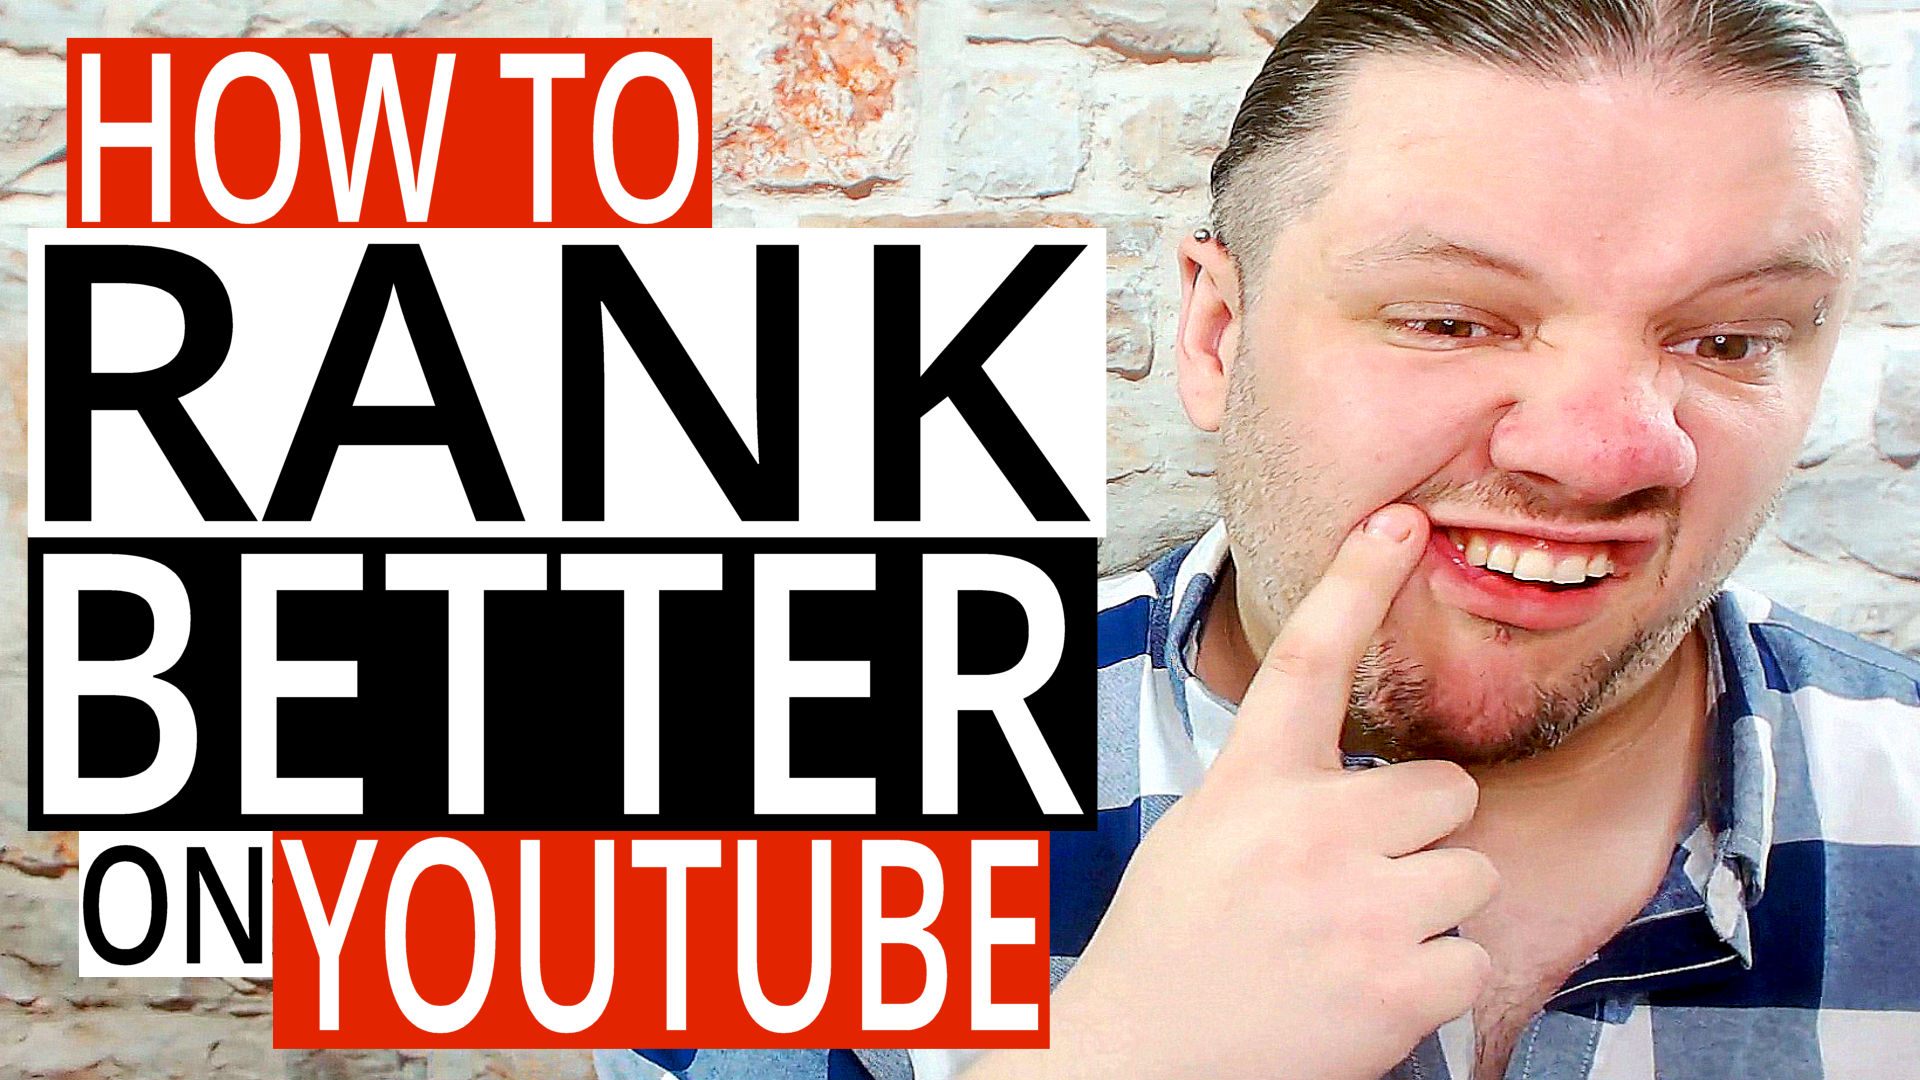 alanspicer,How To Rank Better On YouTube,Rank Better On YouTube,how to rank video,rank better in youtube search,youtube search,youtube search ranking,rank better,how to rank youtube videos,how to rank youtube videos on first page,how to rank youtube videos on first page of google,rank better in search,youtube seo,ranking youtube videos,grow a youtube channel,how to rank videos on youtube,rank videos higher on youtube,video seo,youtube seo 2018,alan spicer